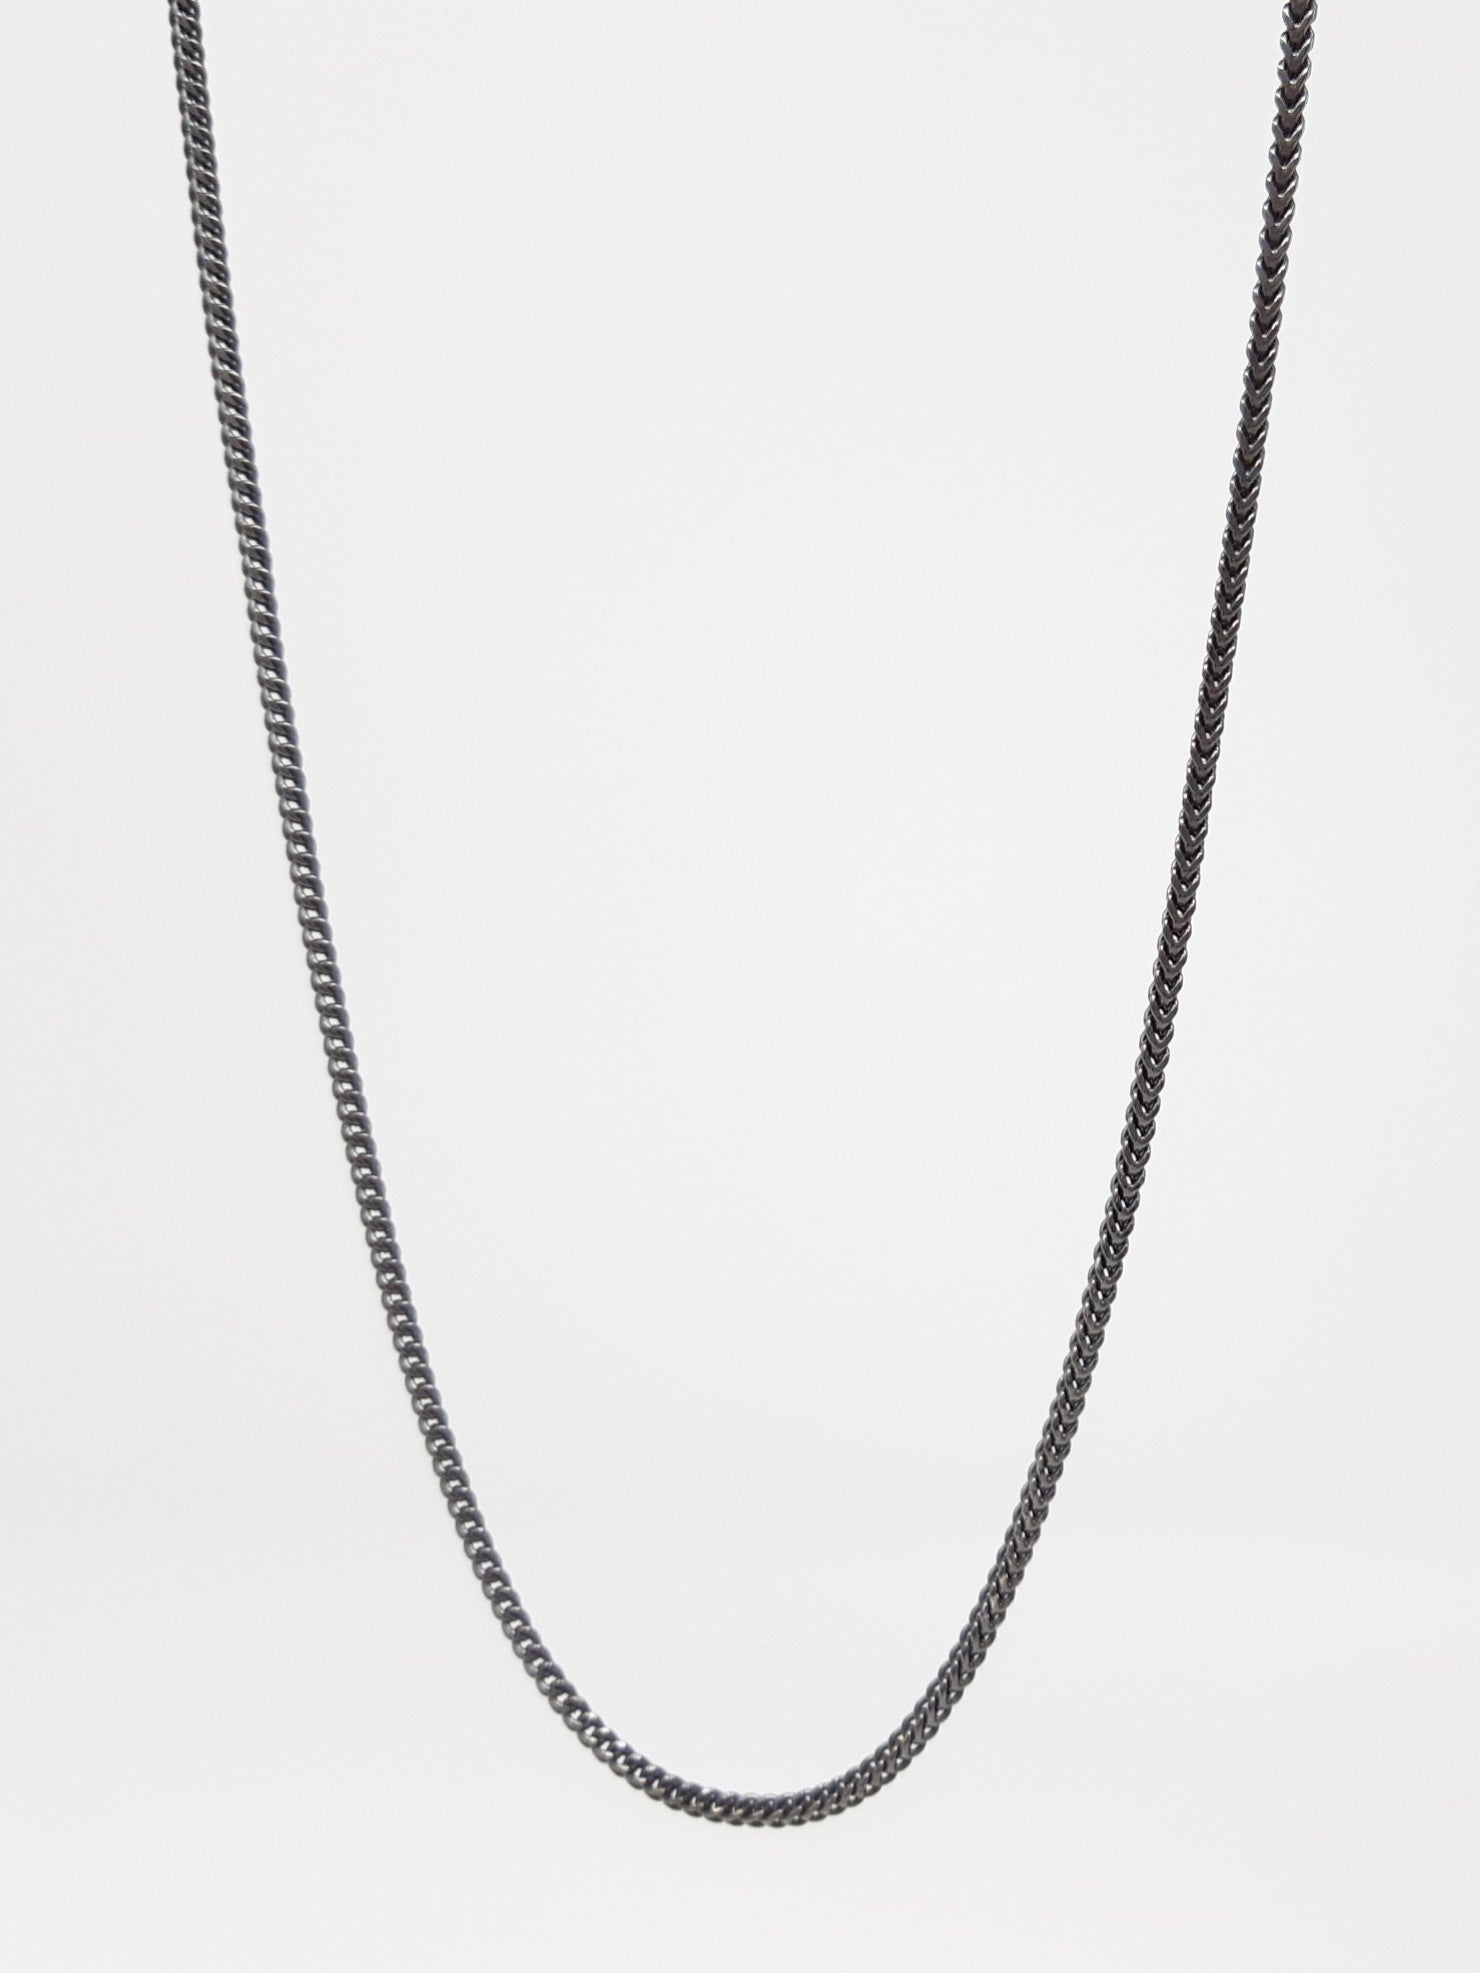 Black Gold Chain